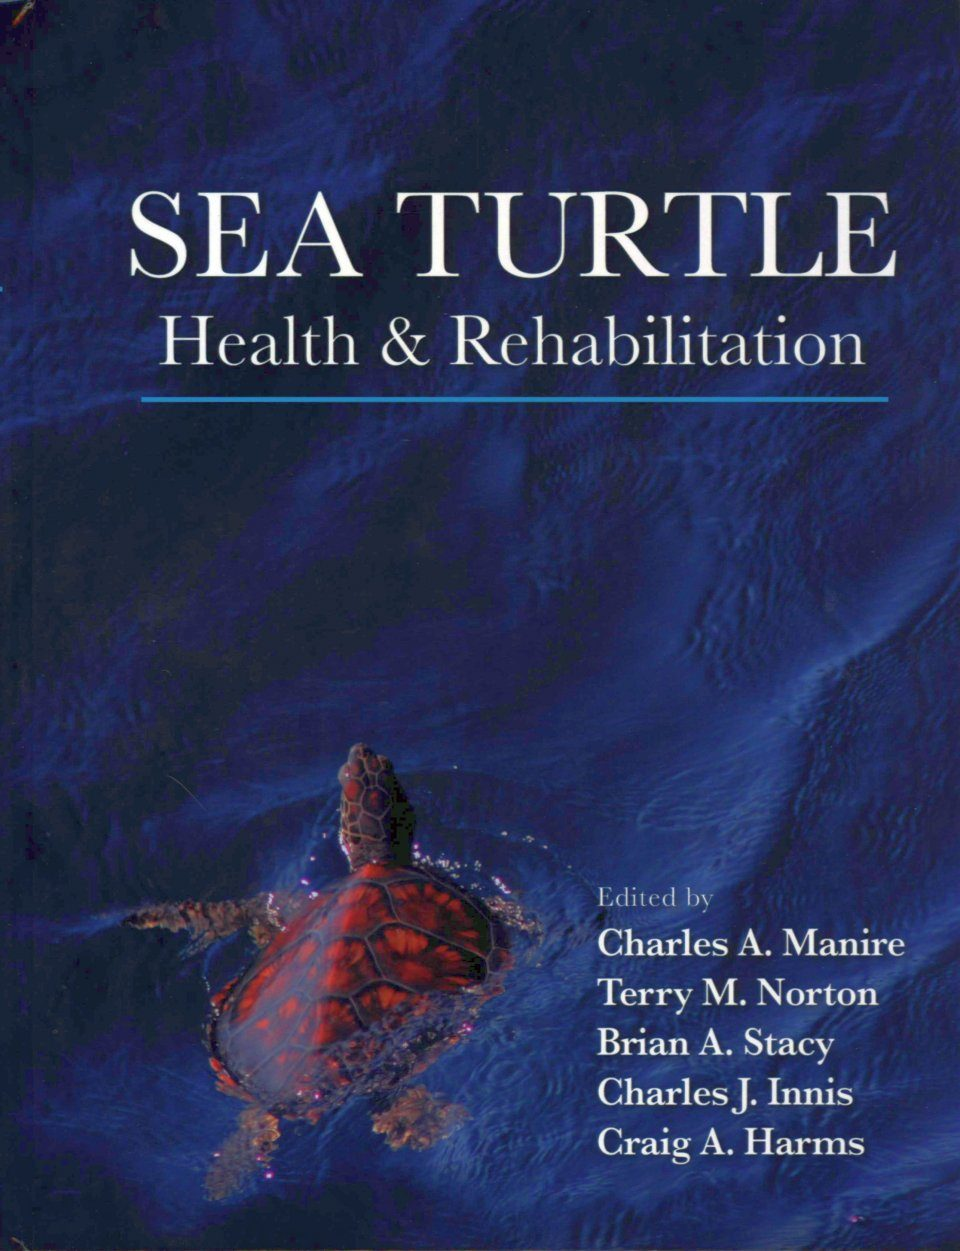 Sea Turtle Health & Rehabilitation